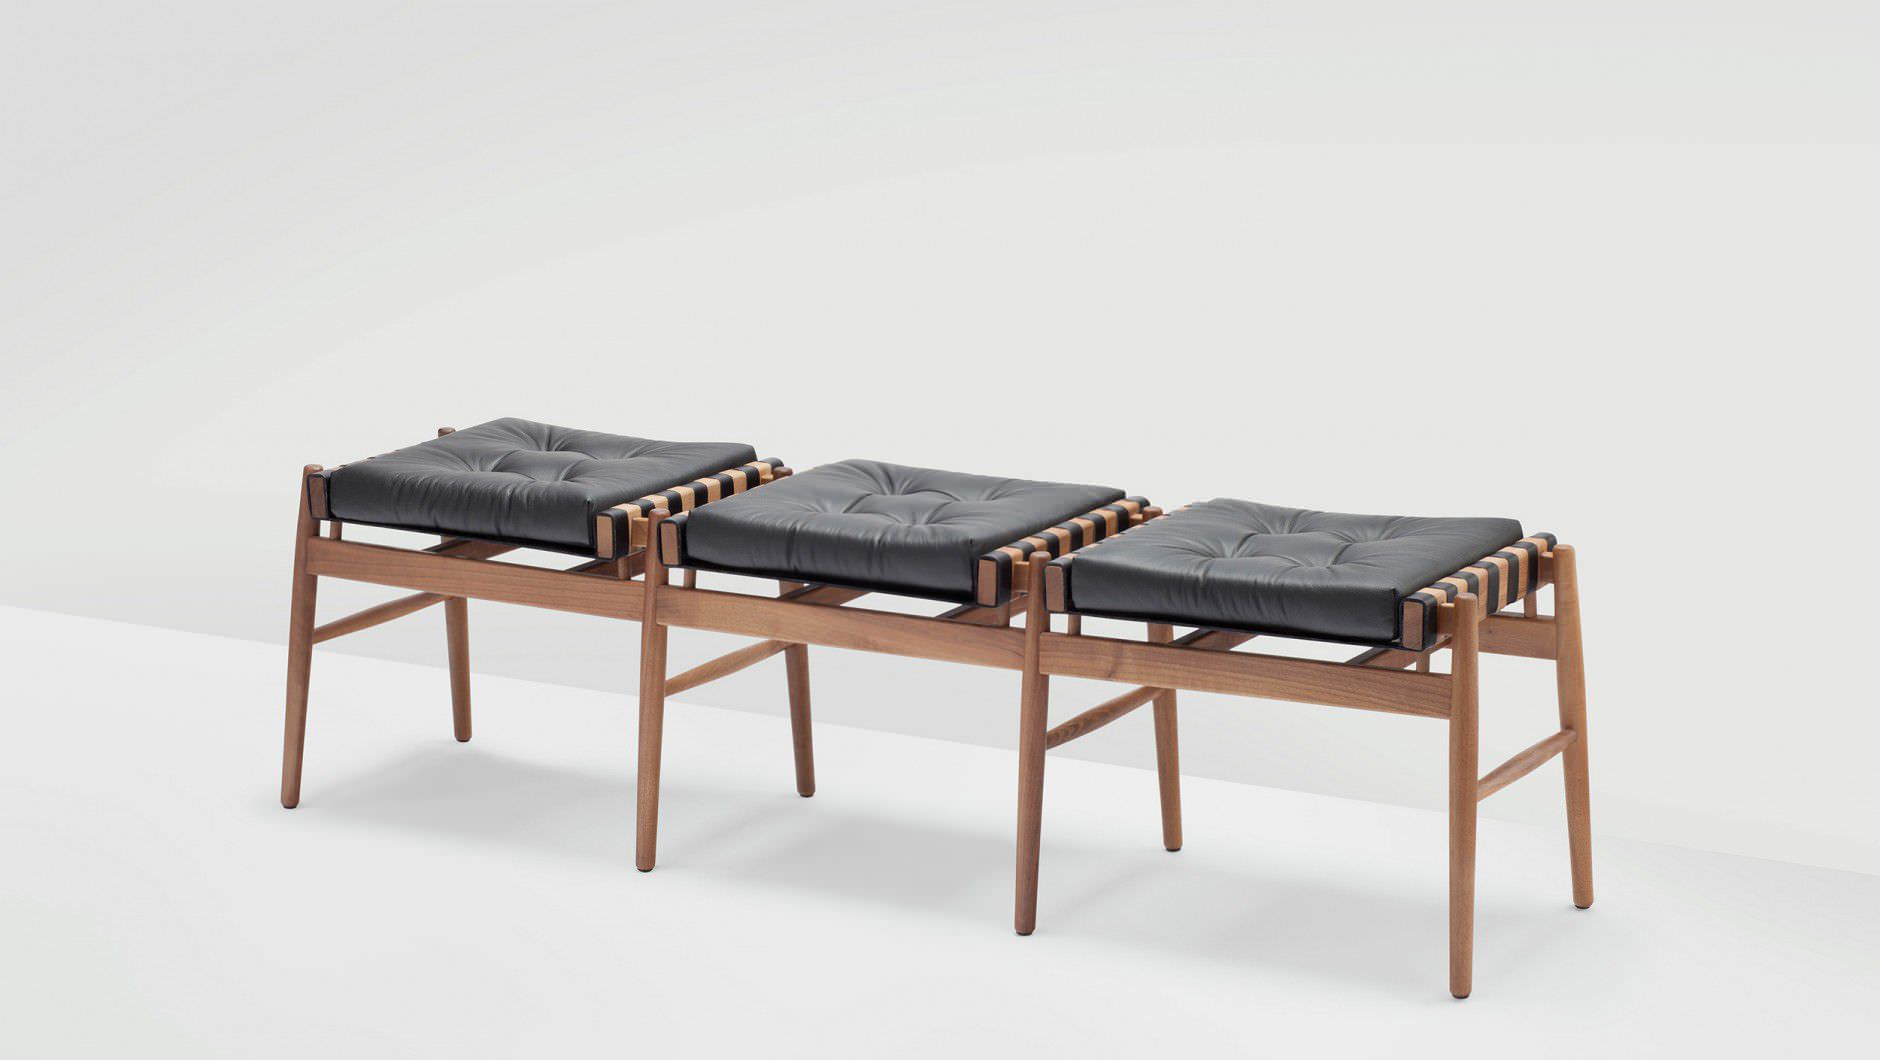 wood and leather bench – home bench decor - contemporary bench wood leather h furniture bpress page